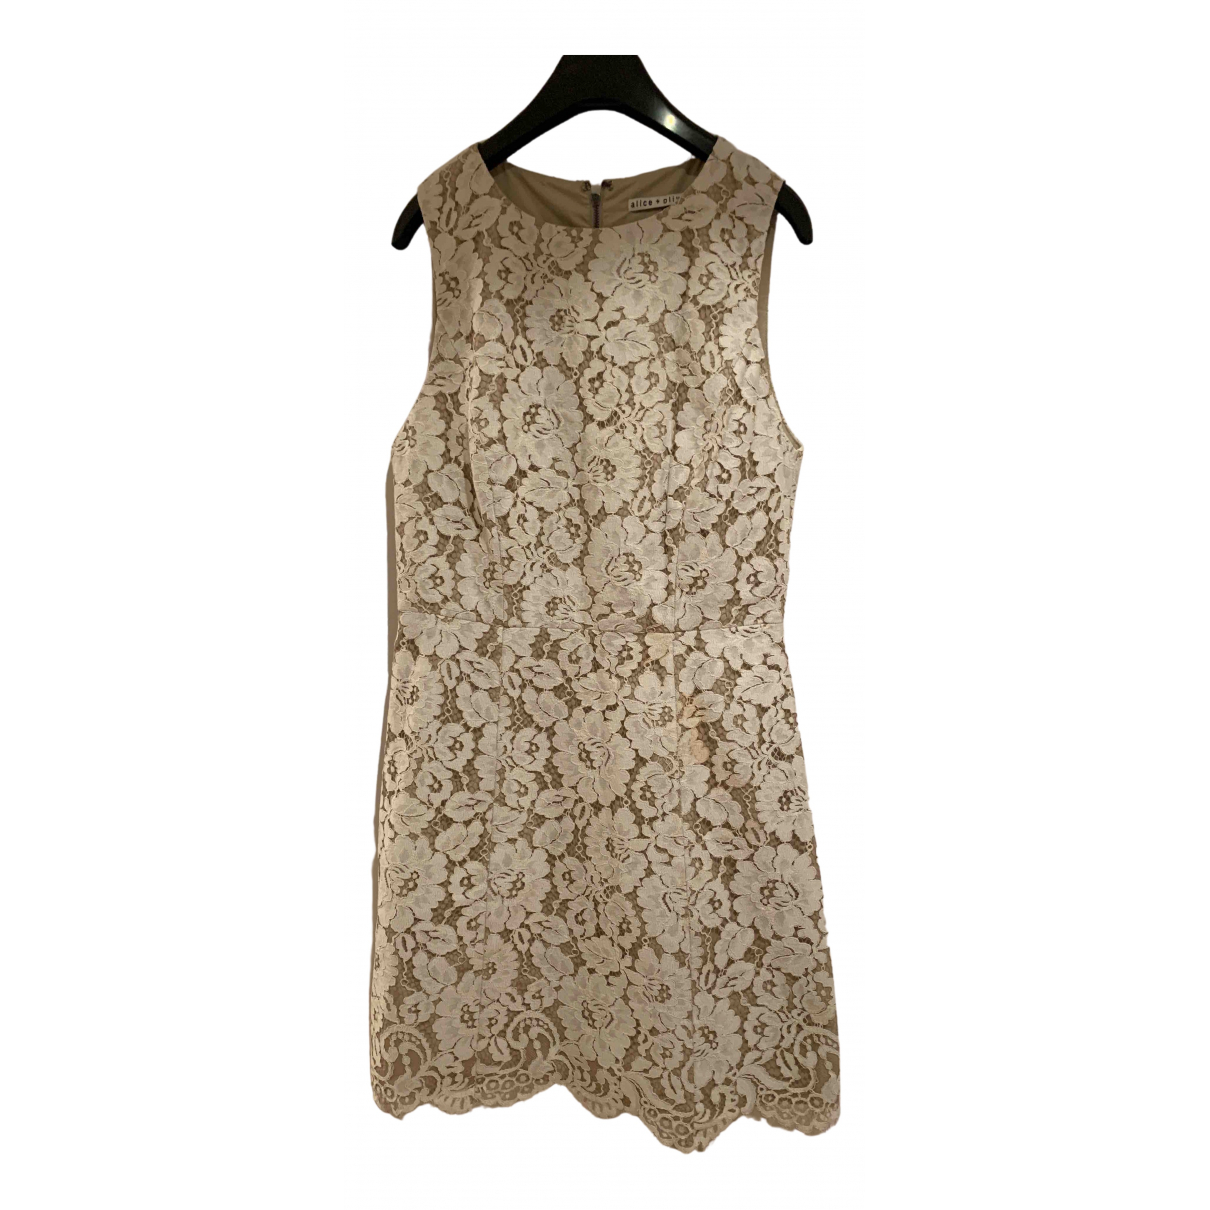 Alice & Olivia \N Lace dress for Women 8 US